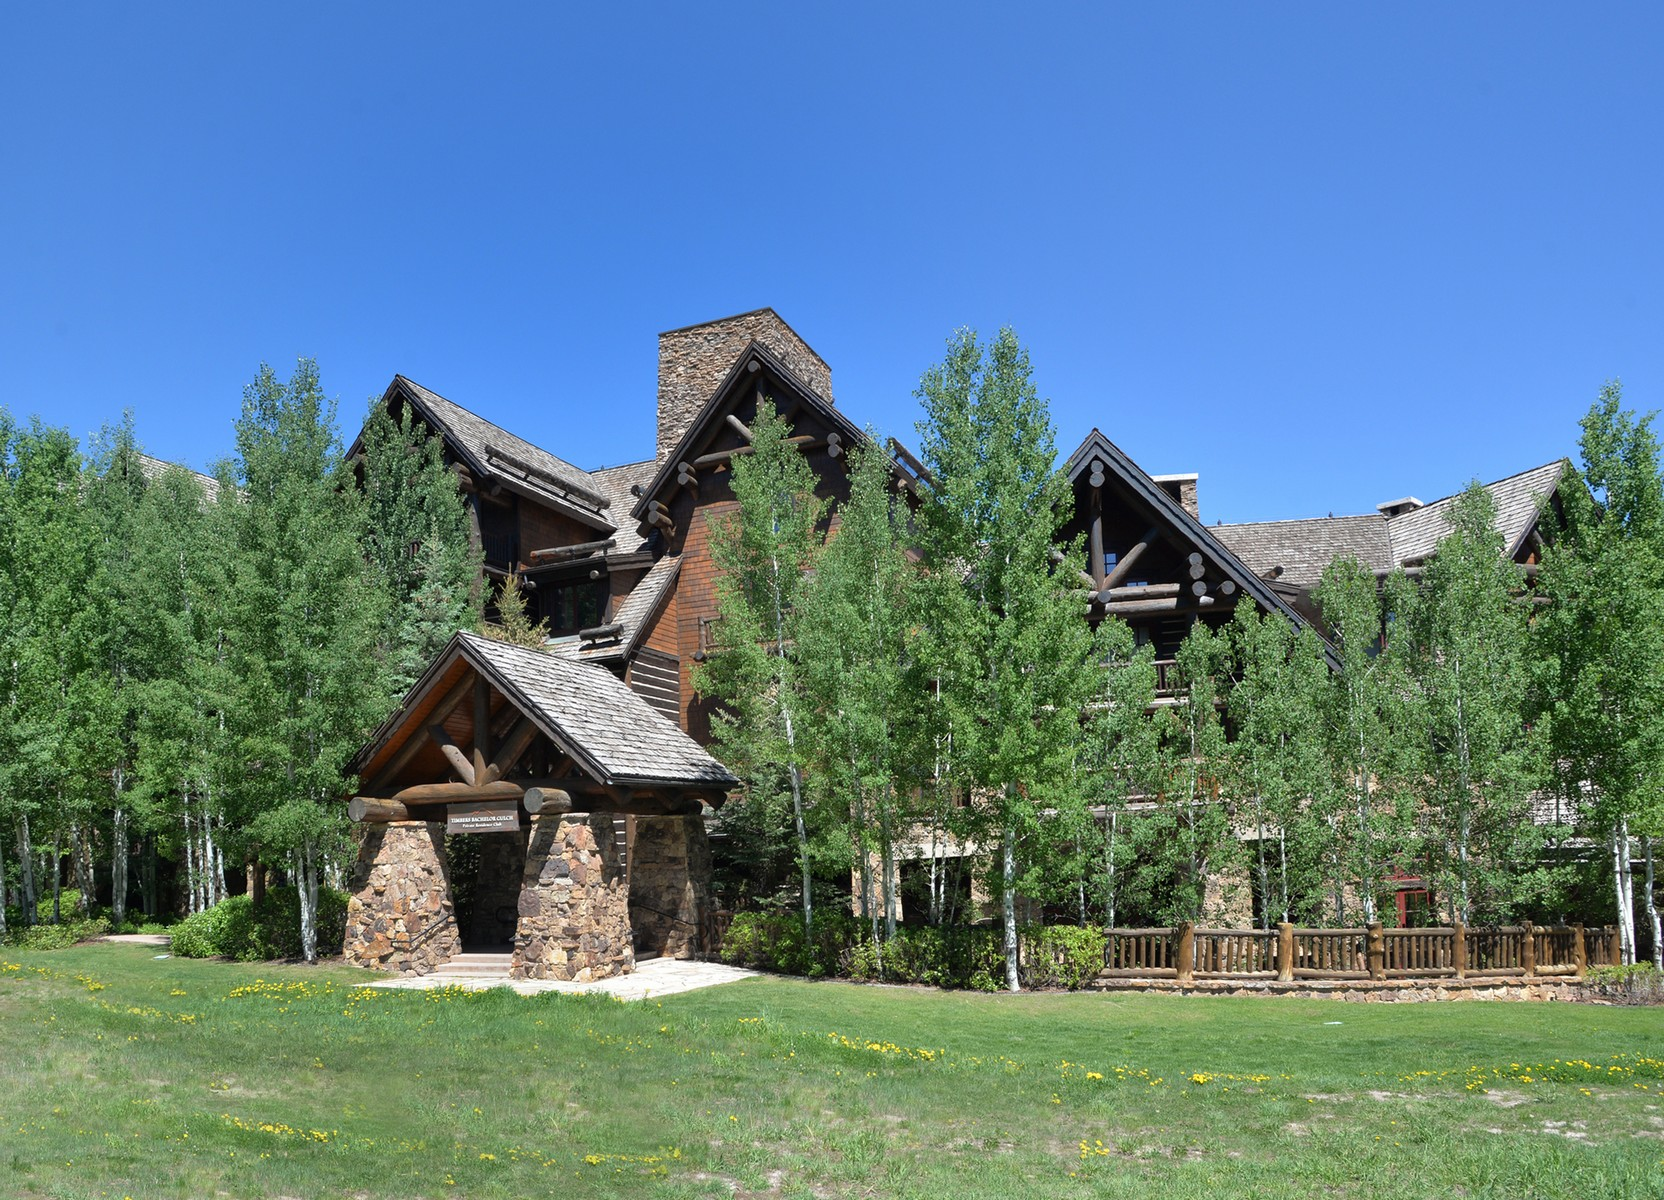 Single Family Home for Sale at Ski Slope Views in Bachelor Gulch 100 Bachelor Ridge Road #3501 Beaver Creek, Colorado 81620 United States